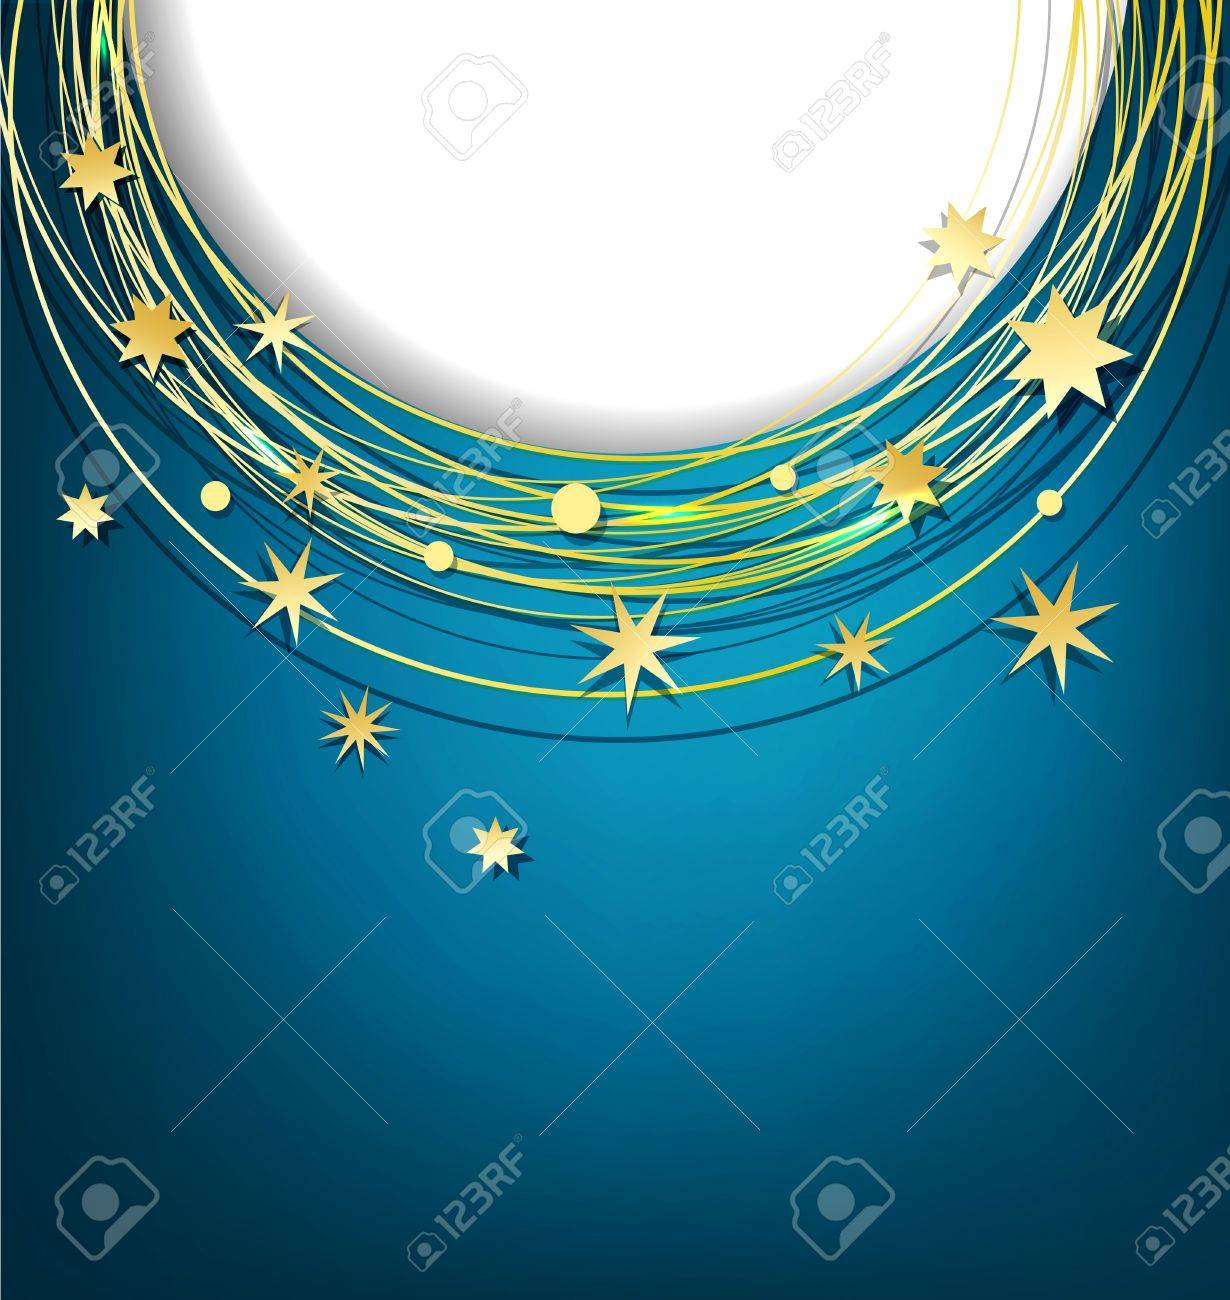 vector abstract background with gold stars Stock Vector - 18226060